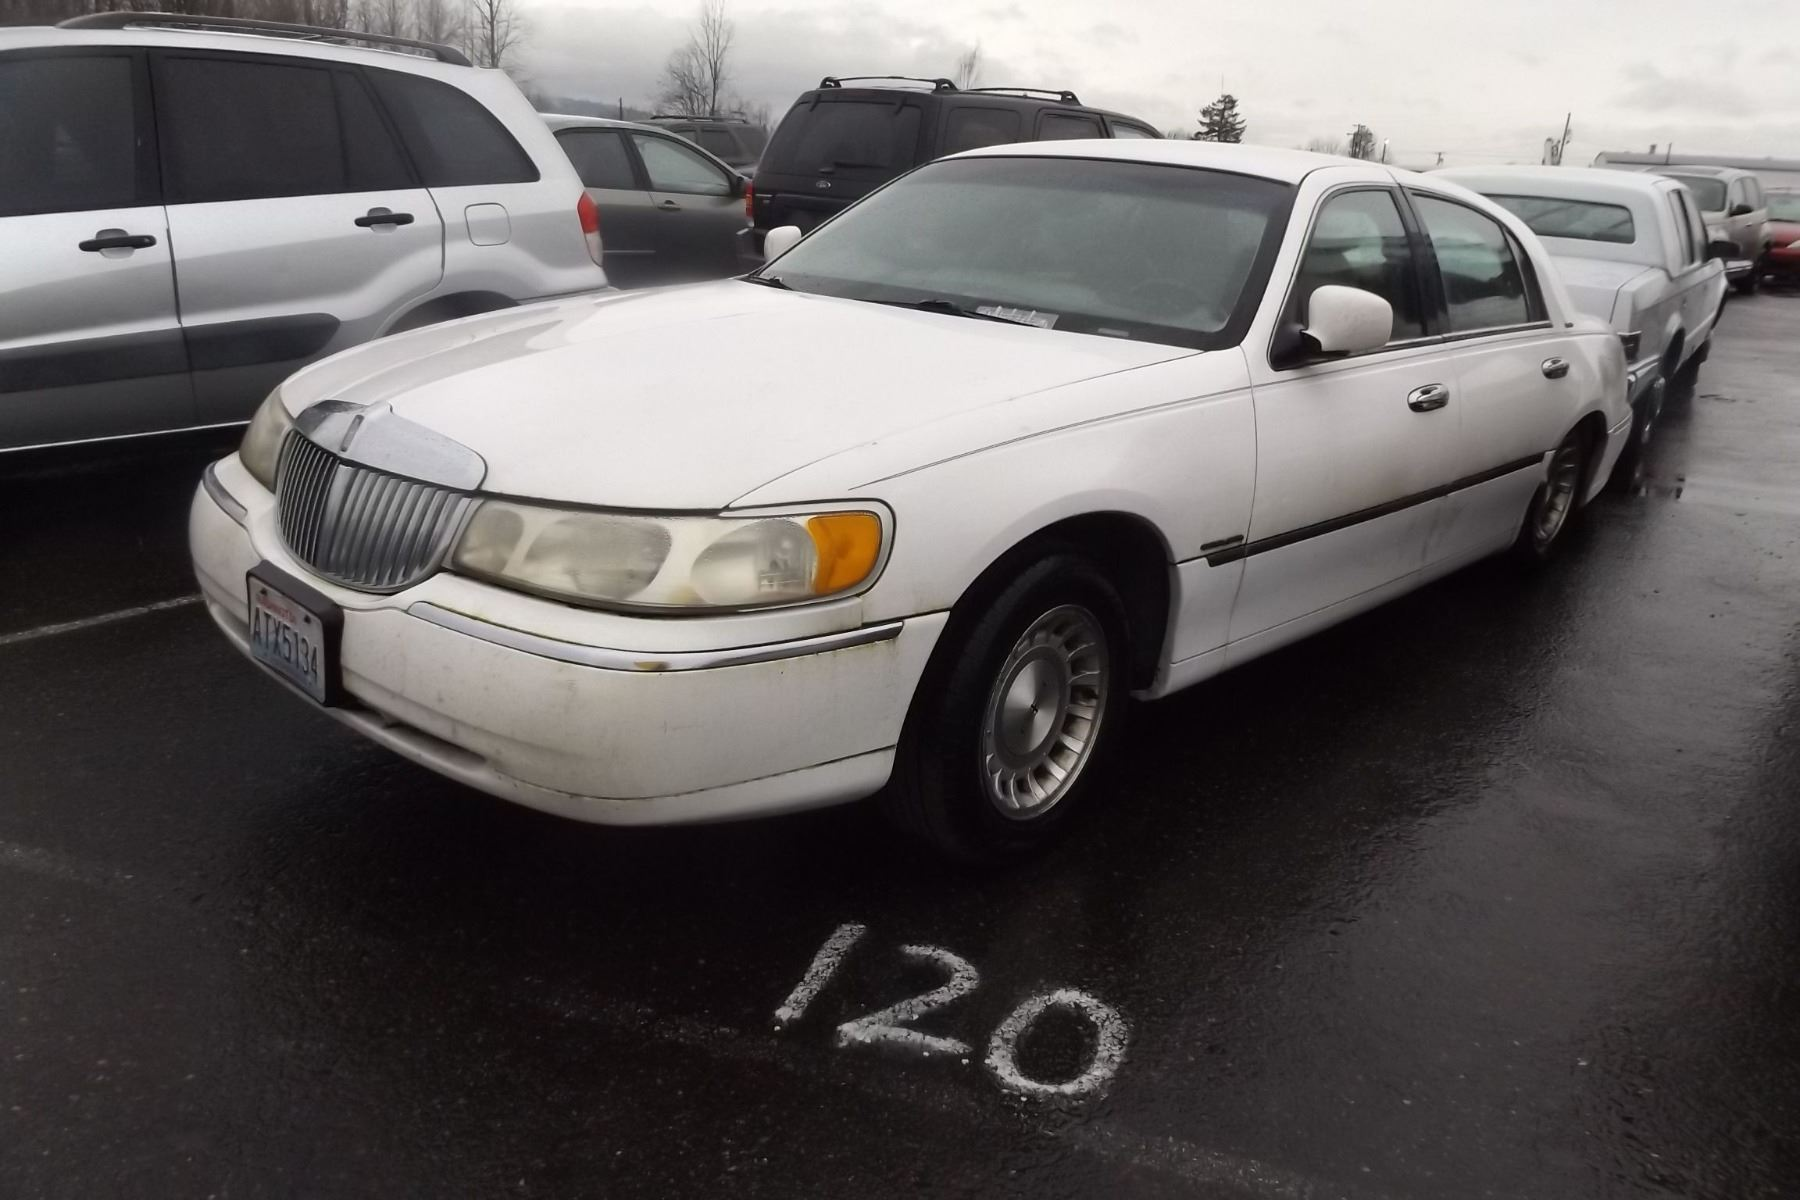 lincoln ls, 1998 lincoln limousine, 2007 cadillac seville car, 1998 lincoln stretch limo, mercury marauder, 1998 lincoln coupe, living out of your car, ford taurus, 1998 lincoln mark viii, ford expedition, lincoln township car, 1998 lincoln fuse box diagram, mercury grand marquis, my car, 1998 lincoln blackwood, 1998 lincoln aviator, mercedes-benz s-class, ford crown victoria police interceptor, lincoln navigator, lincoln lawyer car, chrysler town car, ford explorer, lincoln mkt, 1998 lincoln cartier, 1998 lincoln mks, cadillac dts, 01 town car, 1998 lincoln suv, 1998 lincoln mk viii, 1998 lincoln continental, lincoln mkz, ford crown victoria, cadillac escalade, lincoln mkx, lincoln mks, 1998 lincoln ls, lincoln continental, on 1998 lincoln town car